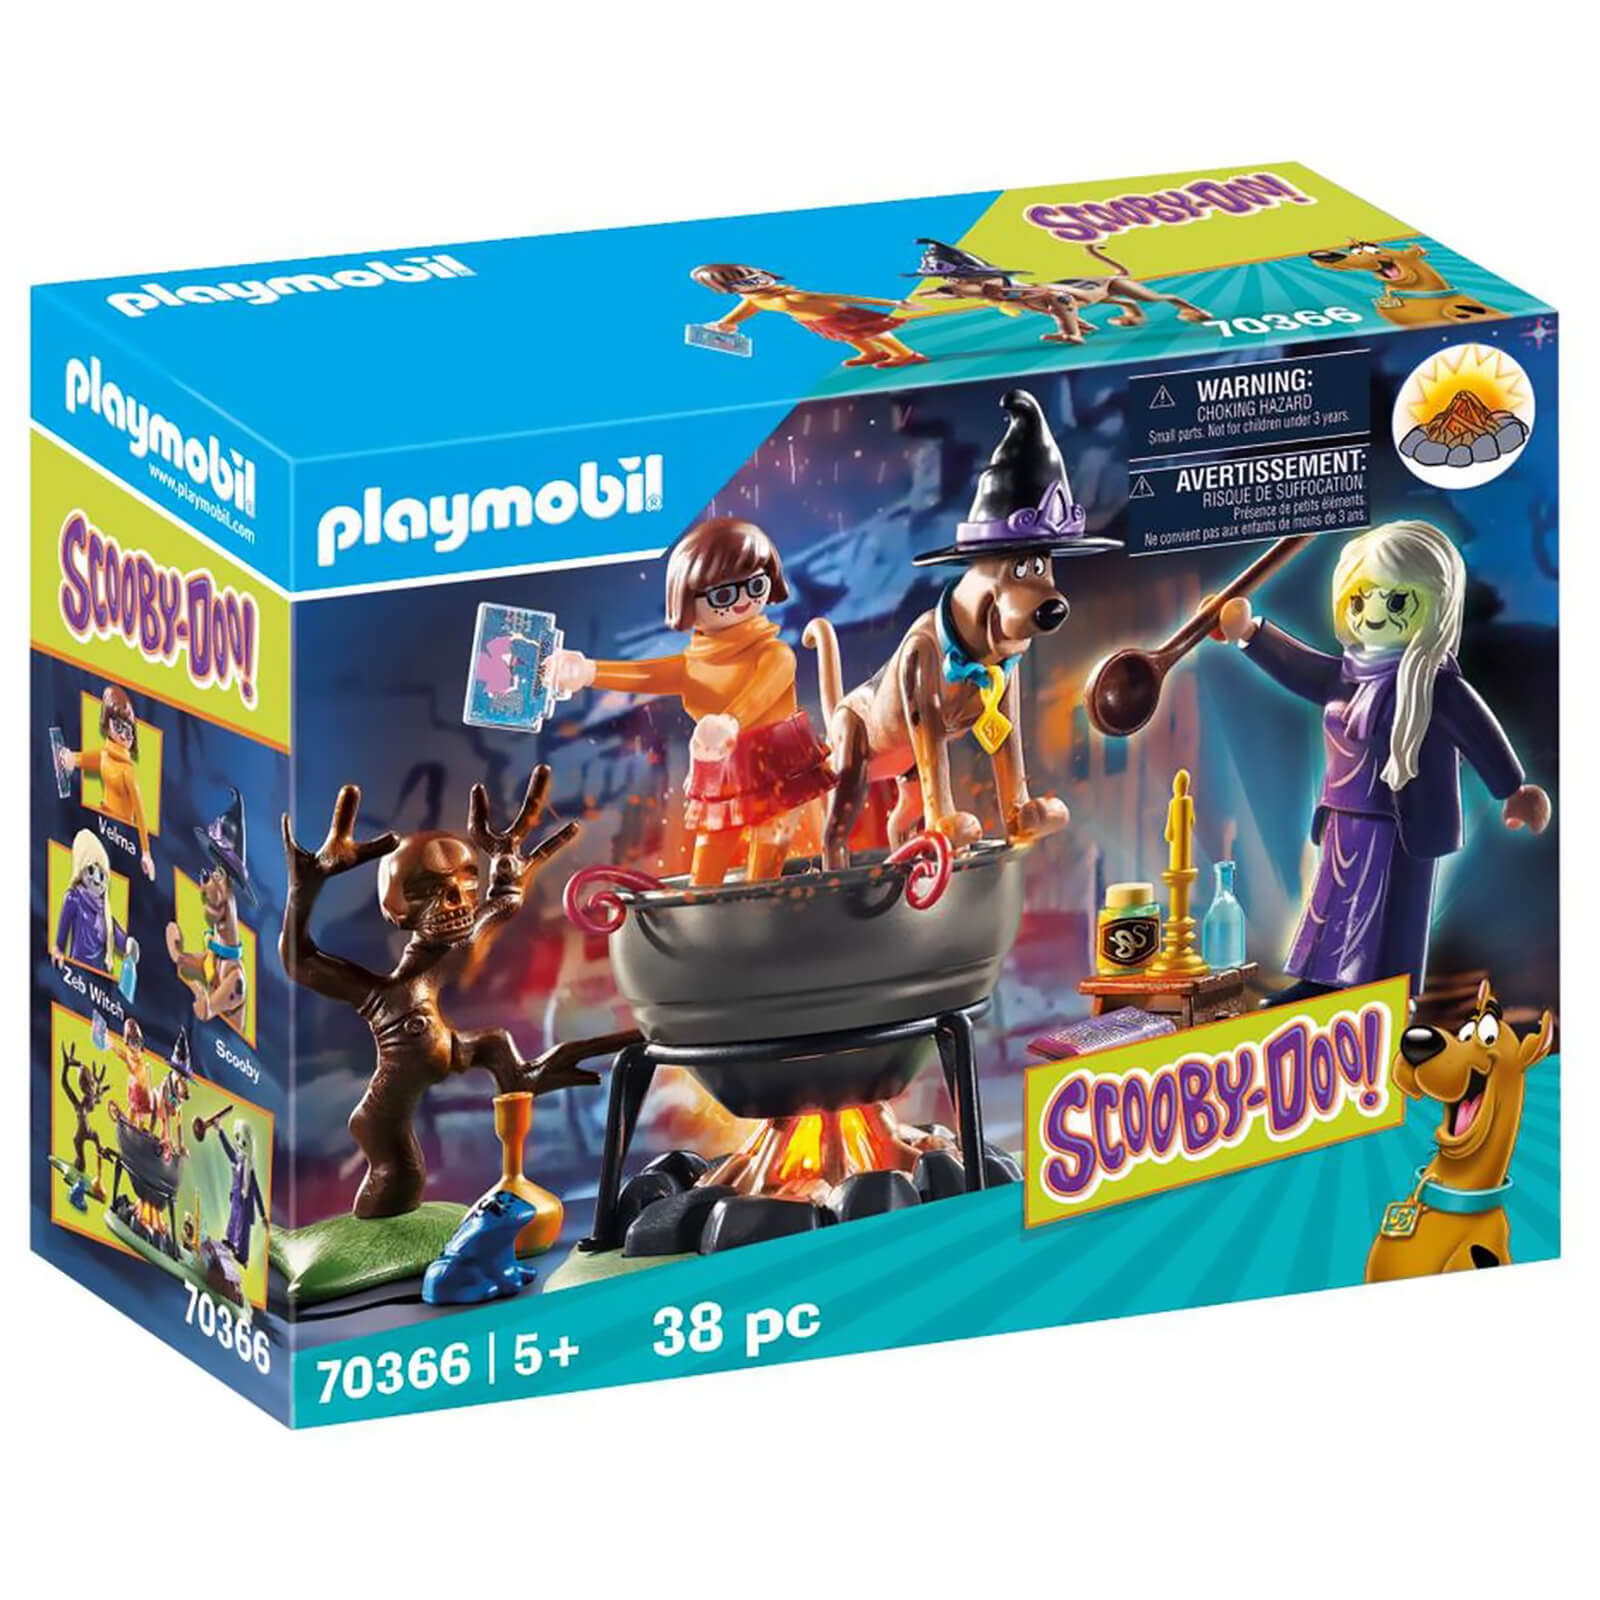 Playmobil Scooby Doo! Adventure In The Witchs Cauldron (70366)